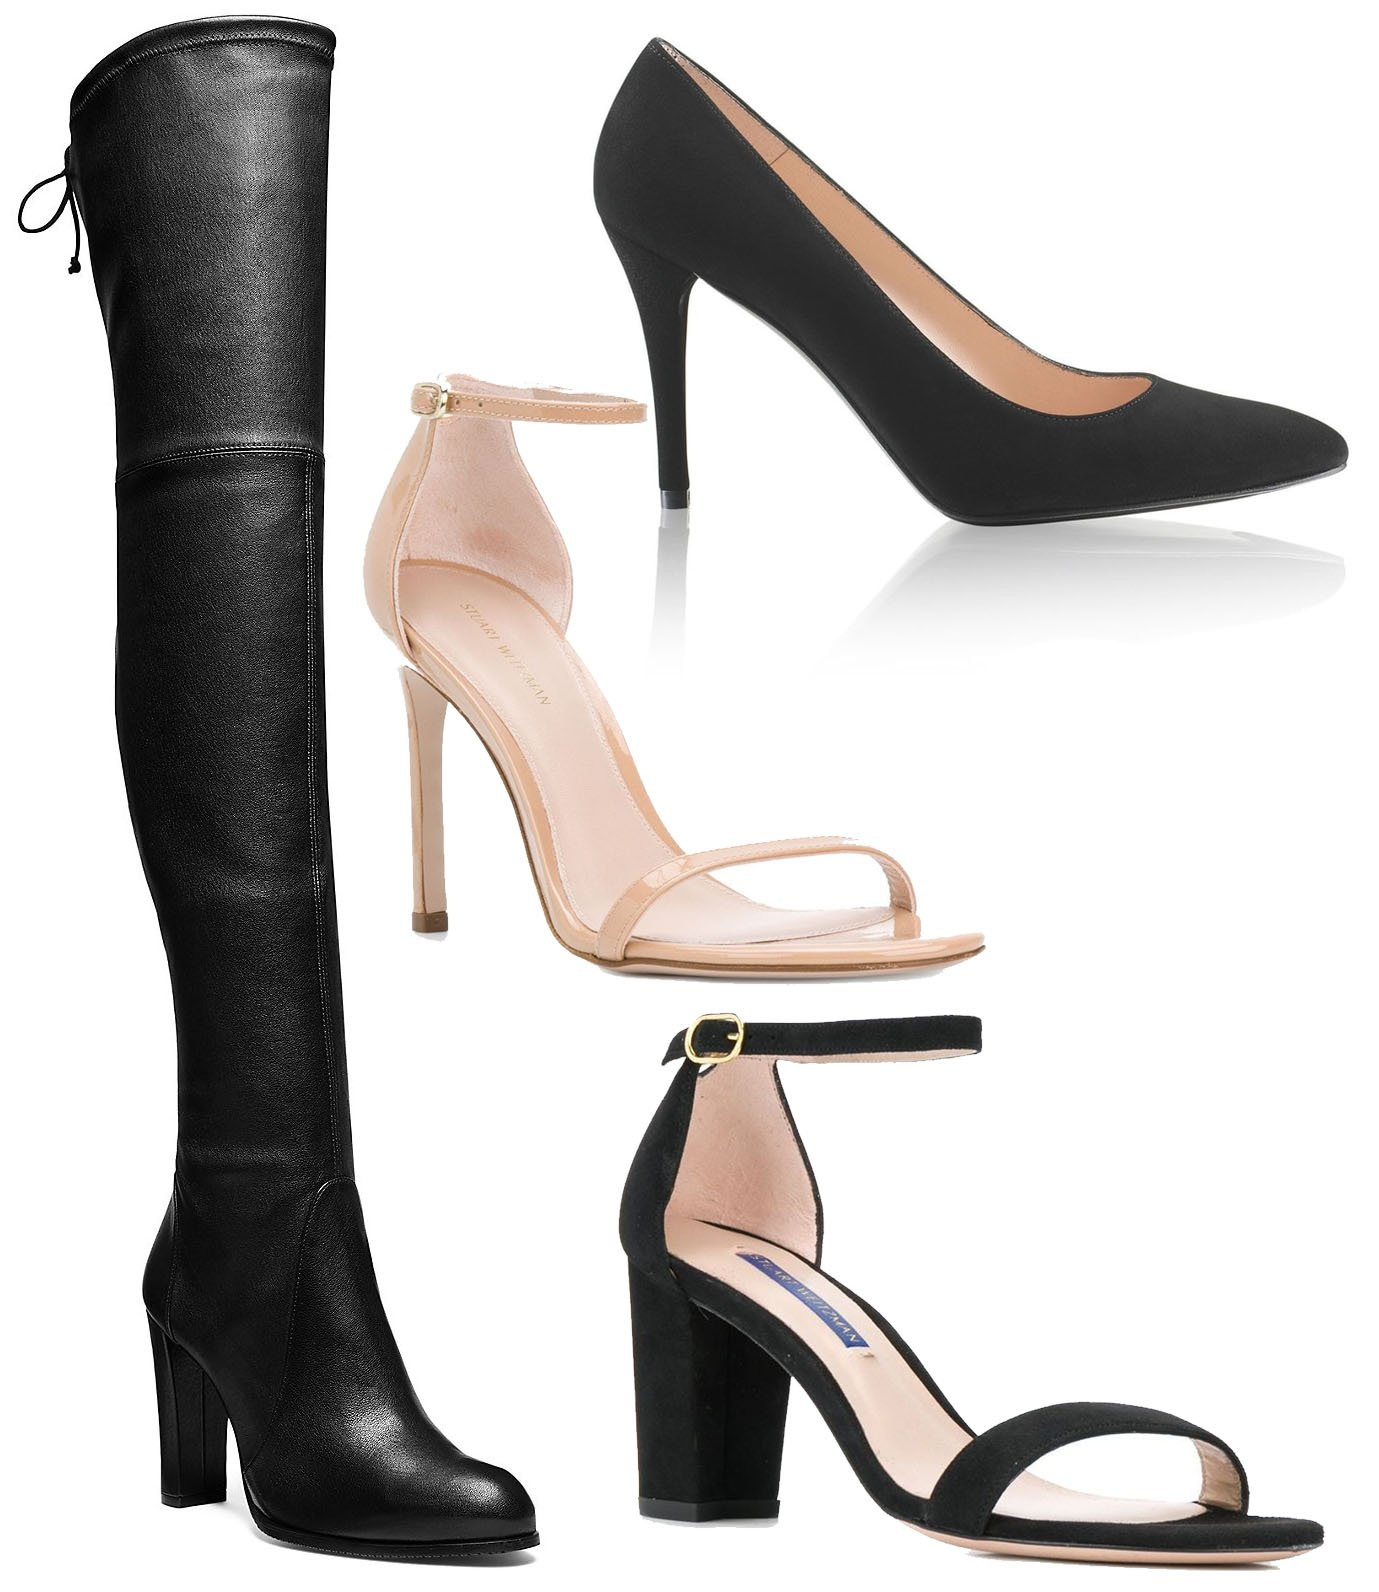 Some of Stuart Weitzman's most popular styles are the Highland boots, Power pumps, and Nudist sandals